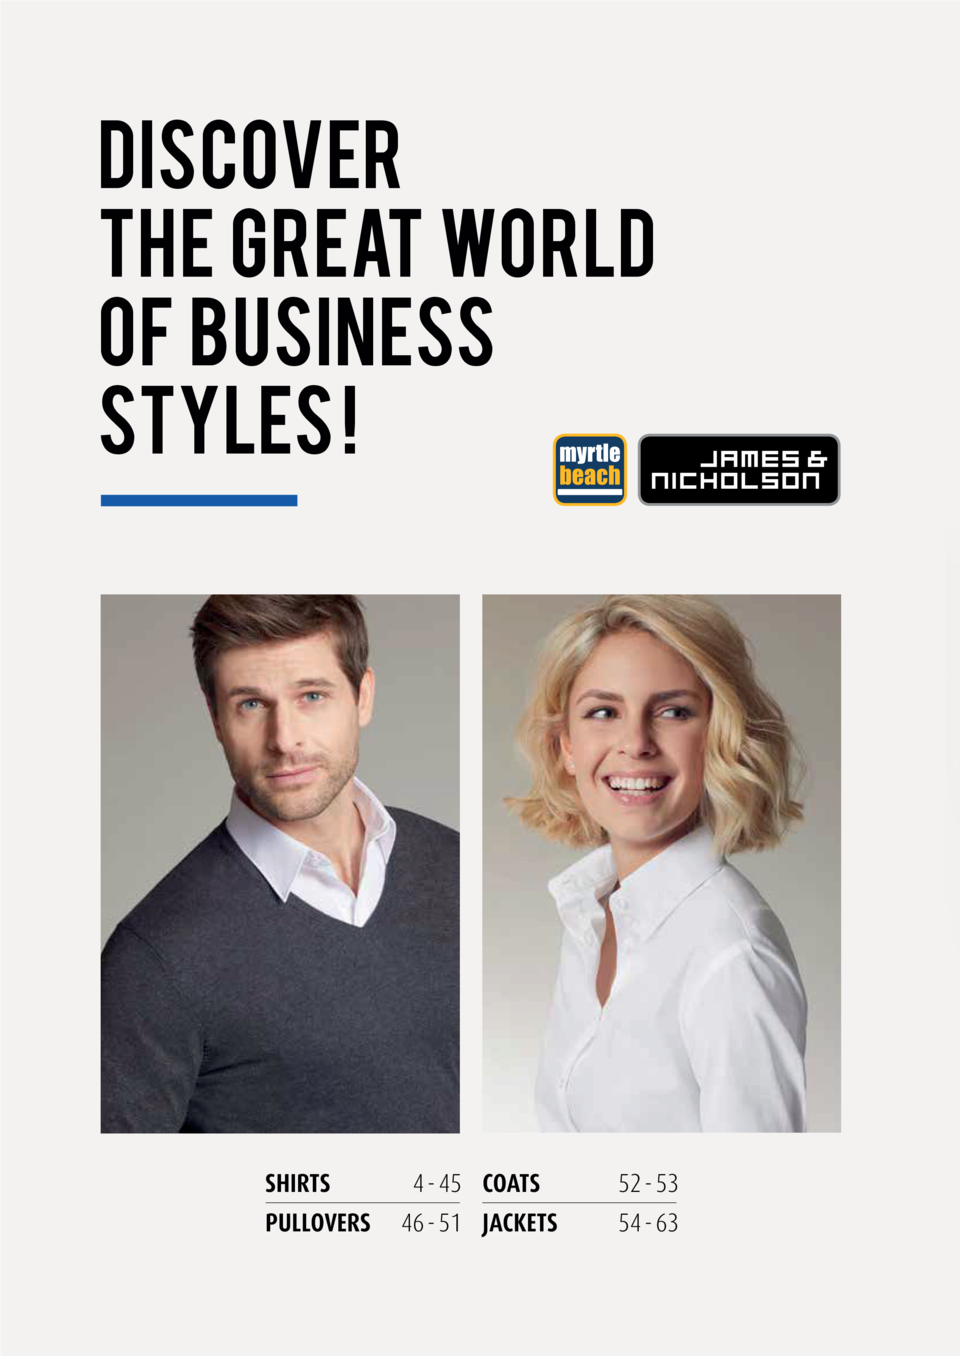 DISCOVER the GREAT WORLD OF BUSINESS STYLES    SHIRTS PULLOVERS  4 - 45 COATS  52 - 53  46 - 51 JACKETS  54 - 63